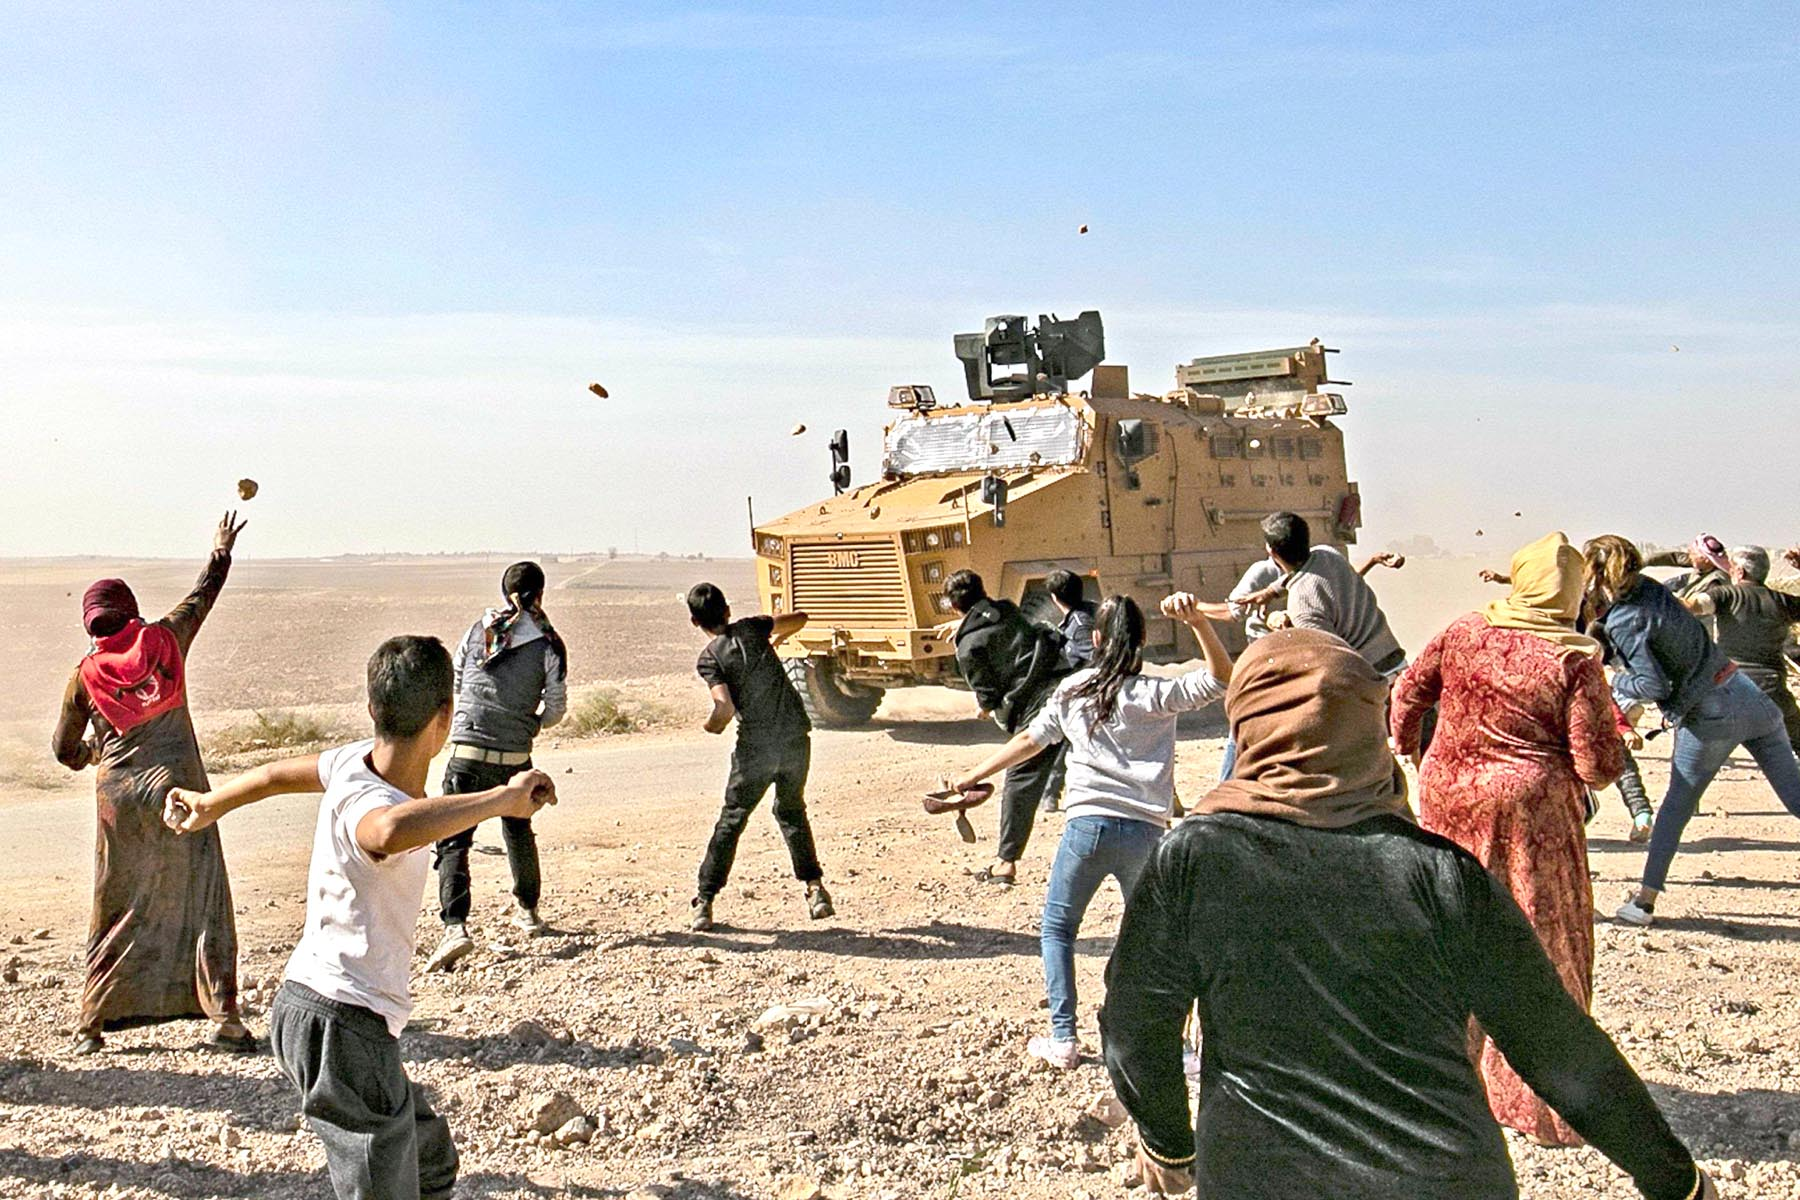 Syrians throw stones towards Turkish military vehicles during an army patrol near the town of Darbasiyah in Syria's north-eastern Hasakah province, November 11. (AFP)